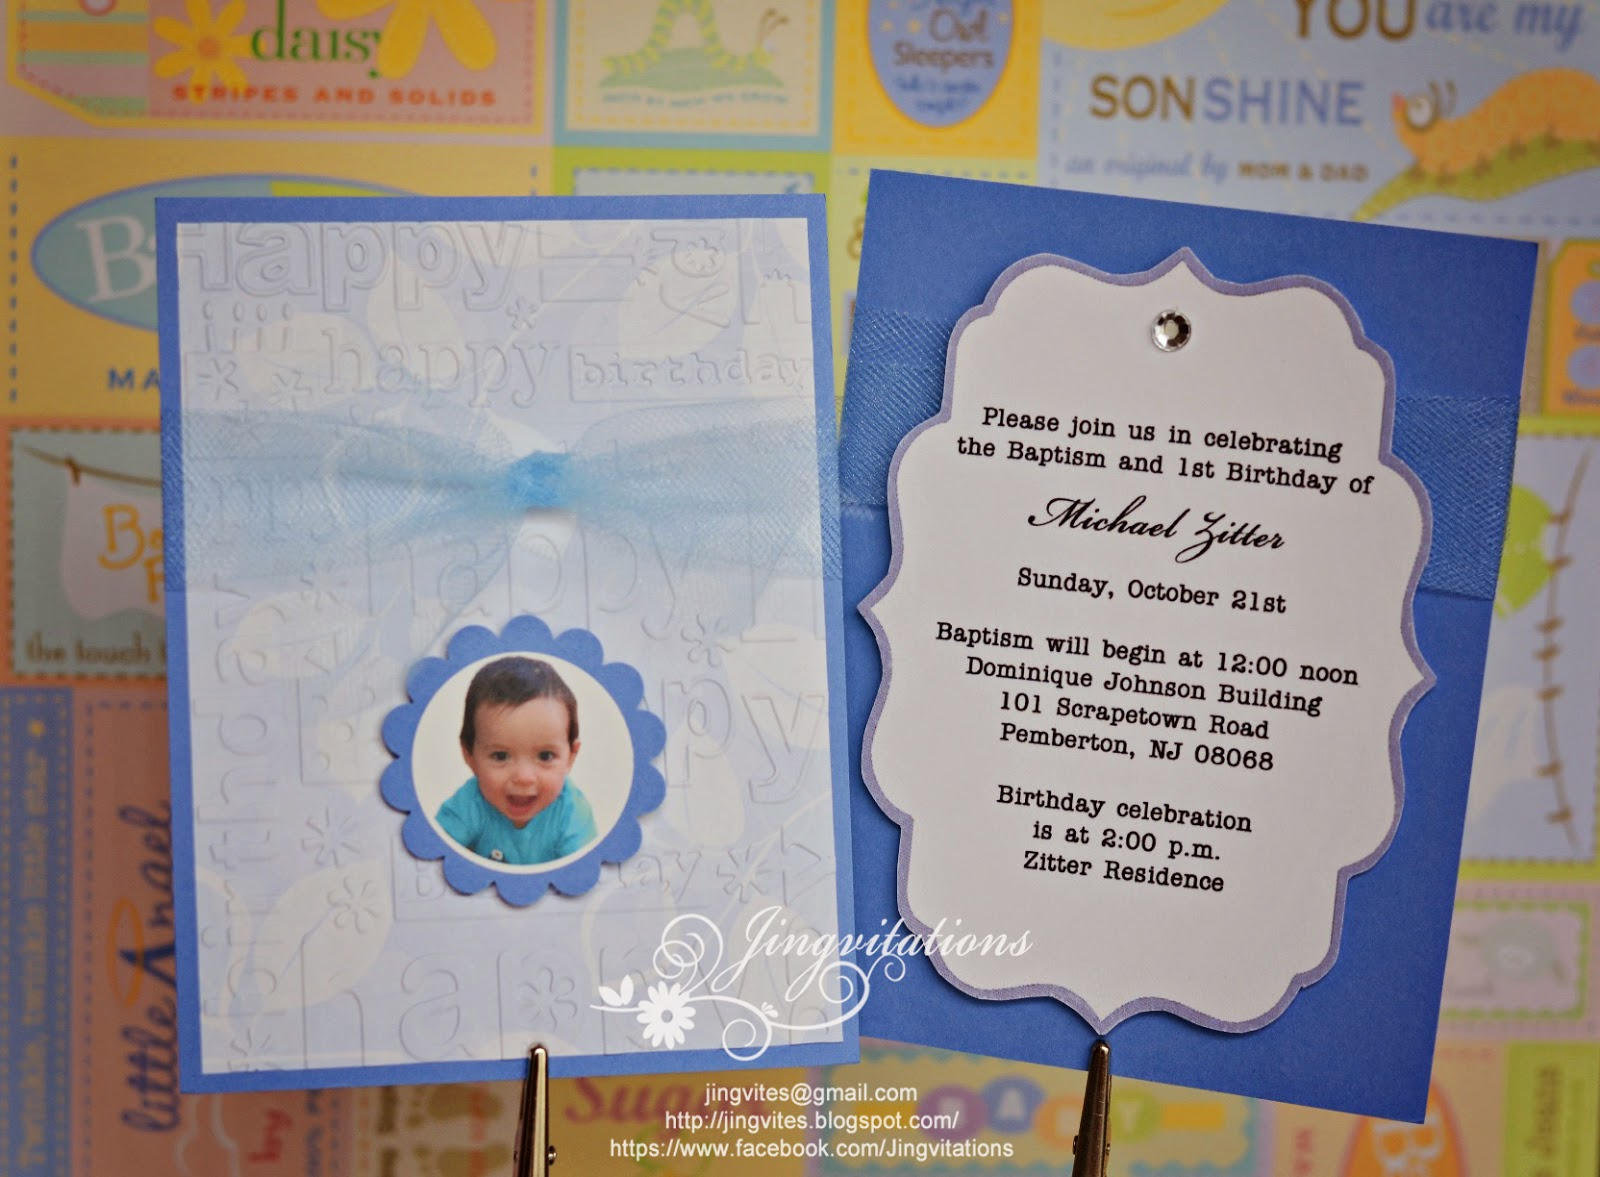 Jingvitations baptism and first birthday invitations baptism invitations first birthday invitations filmwisefo